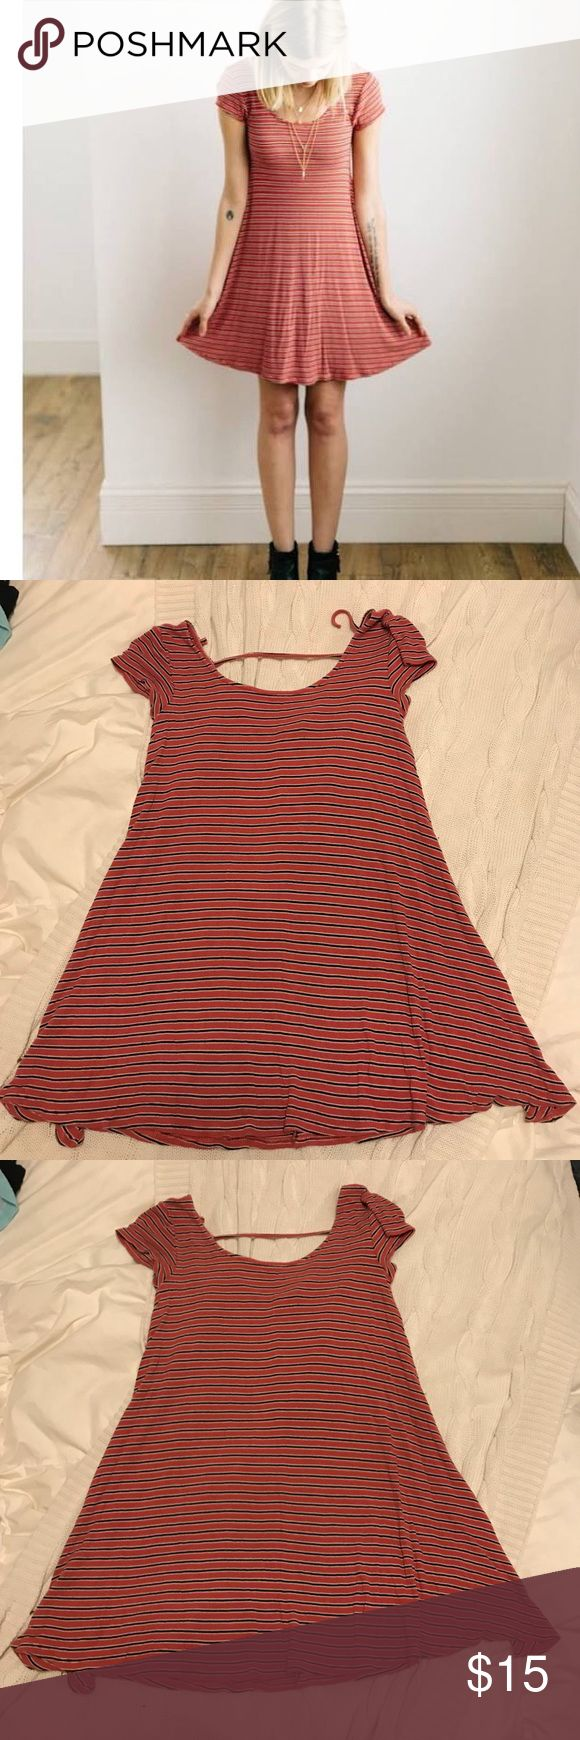 American Eagle T-shirt Dress Super cute comfy dress. Great condition. Comes from a smoke free home. American Eagle Outfitters Dresses Mini